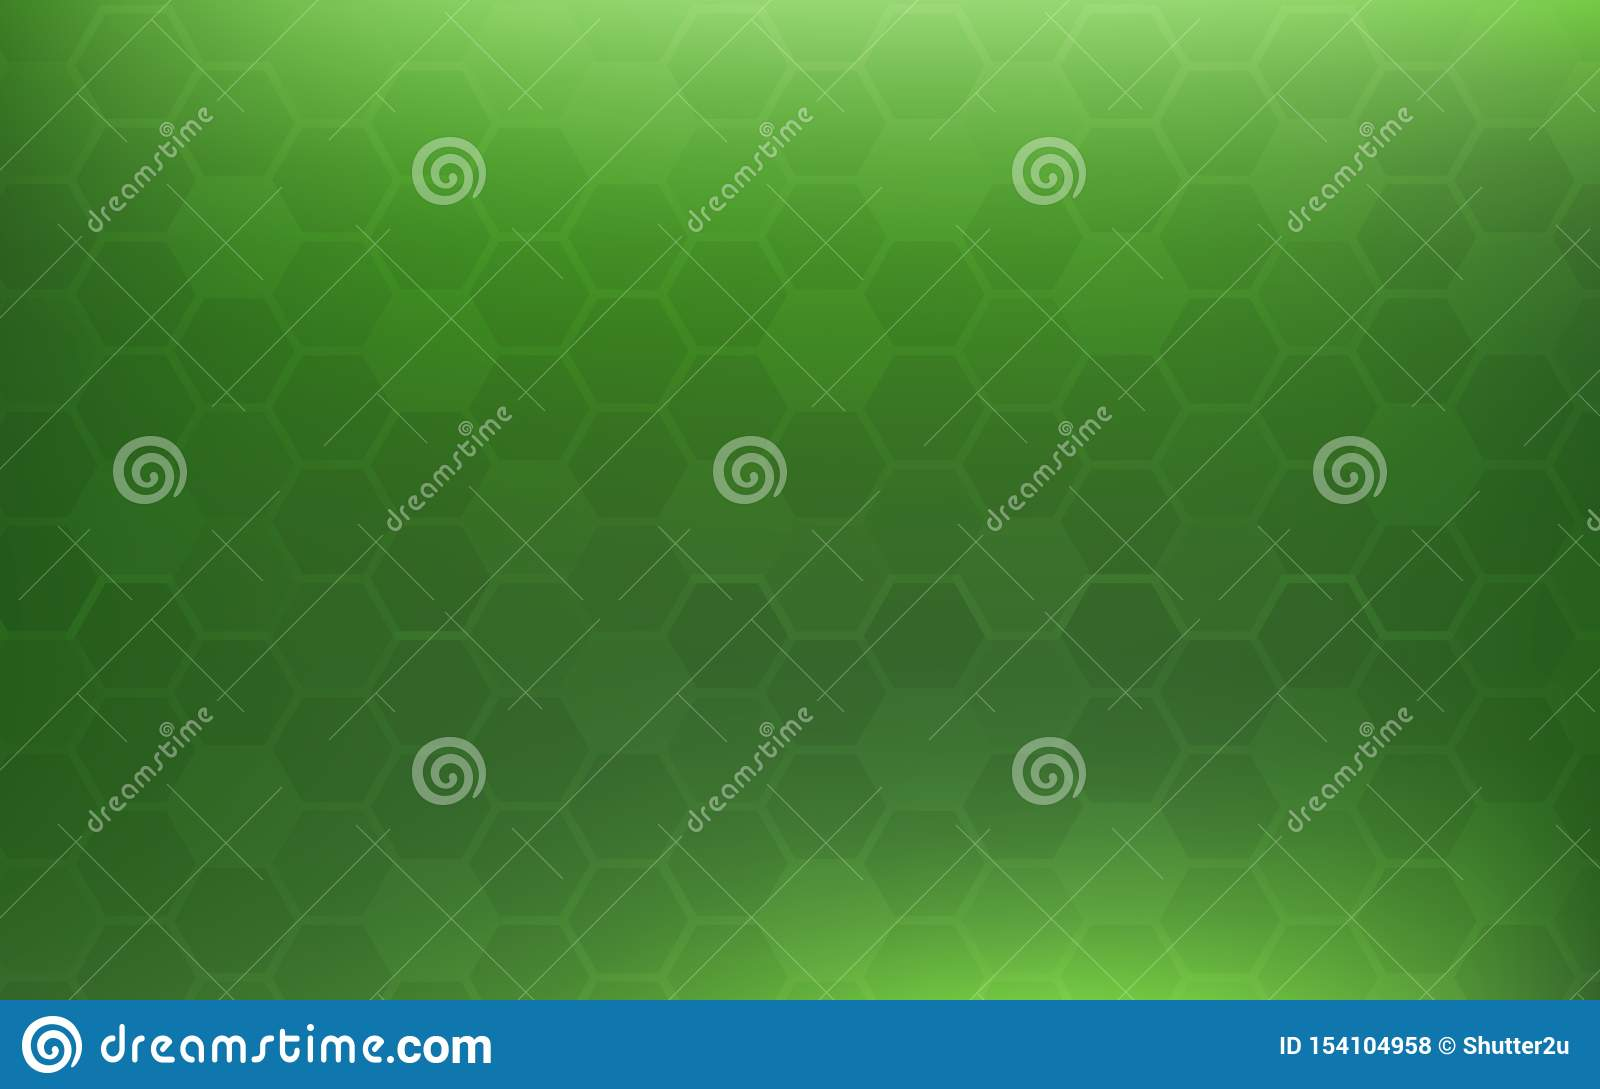 Green Honeycomb Abstract Background Wallpaper And Texture